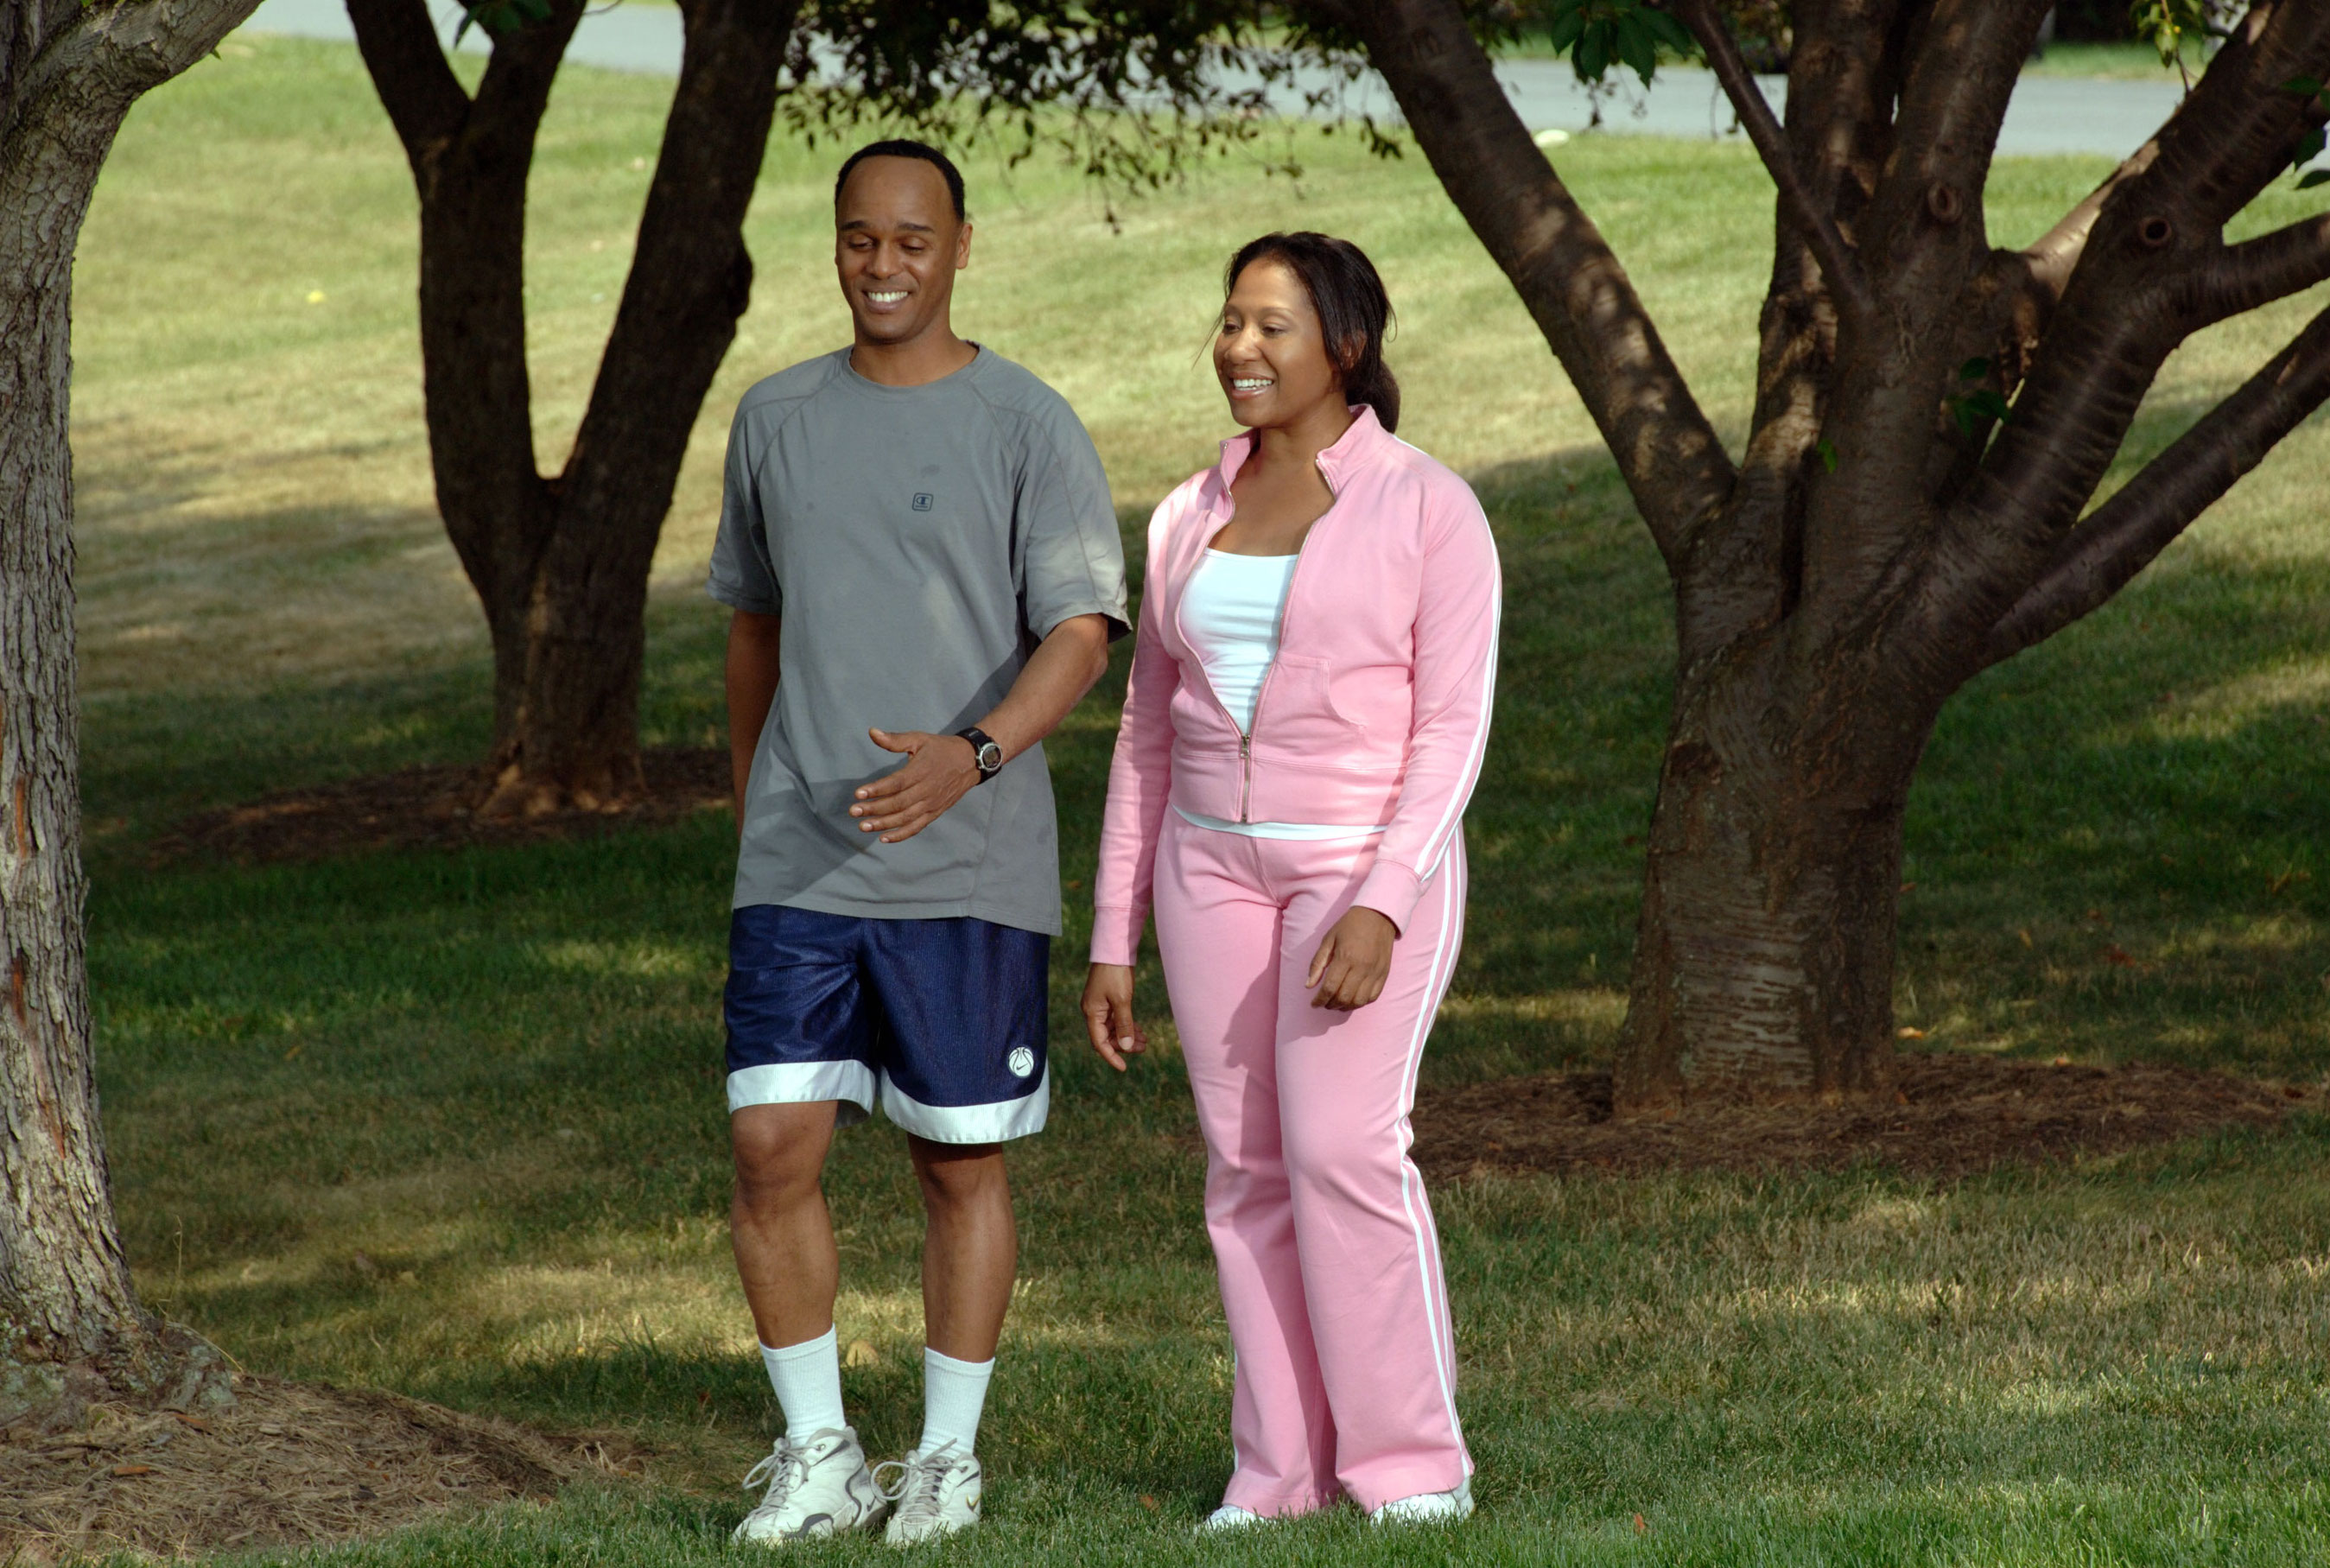 walking to lose weight - walking and diabetes - walking and insulin resistance - walking benefits for diabetes - walking to lower insulin resistance - walking to lower blood sugar